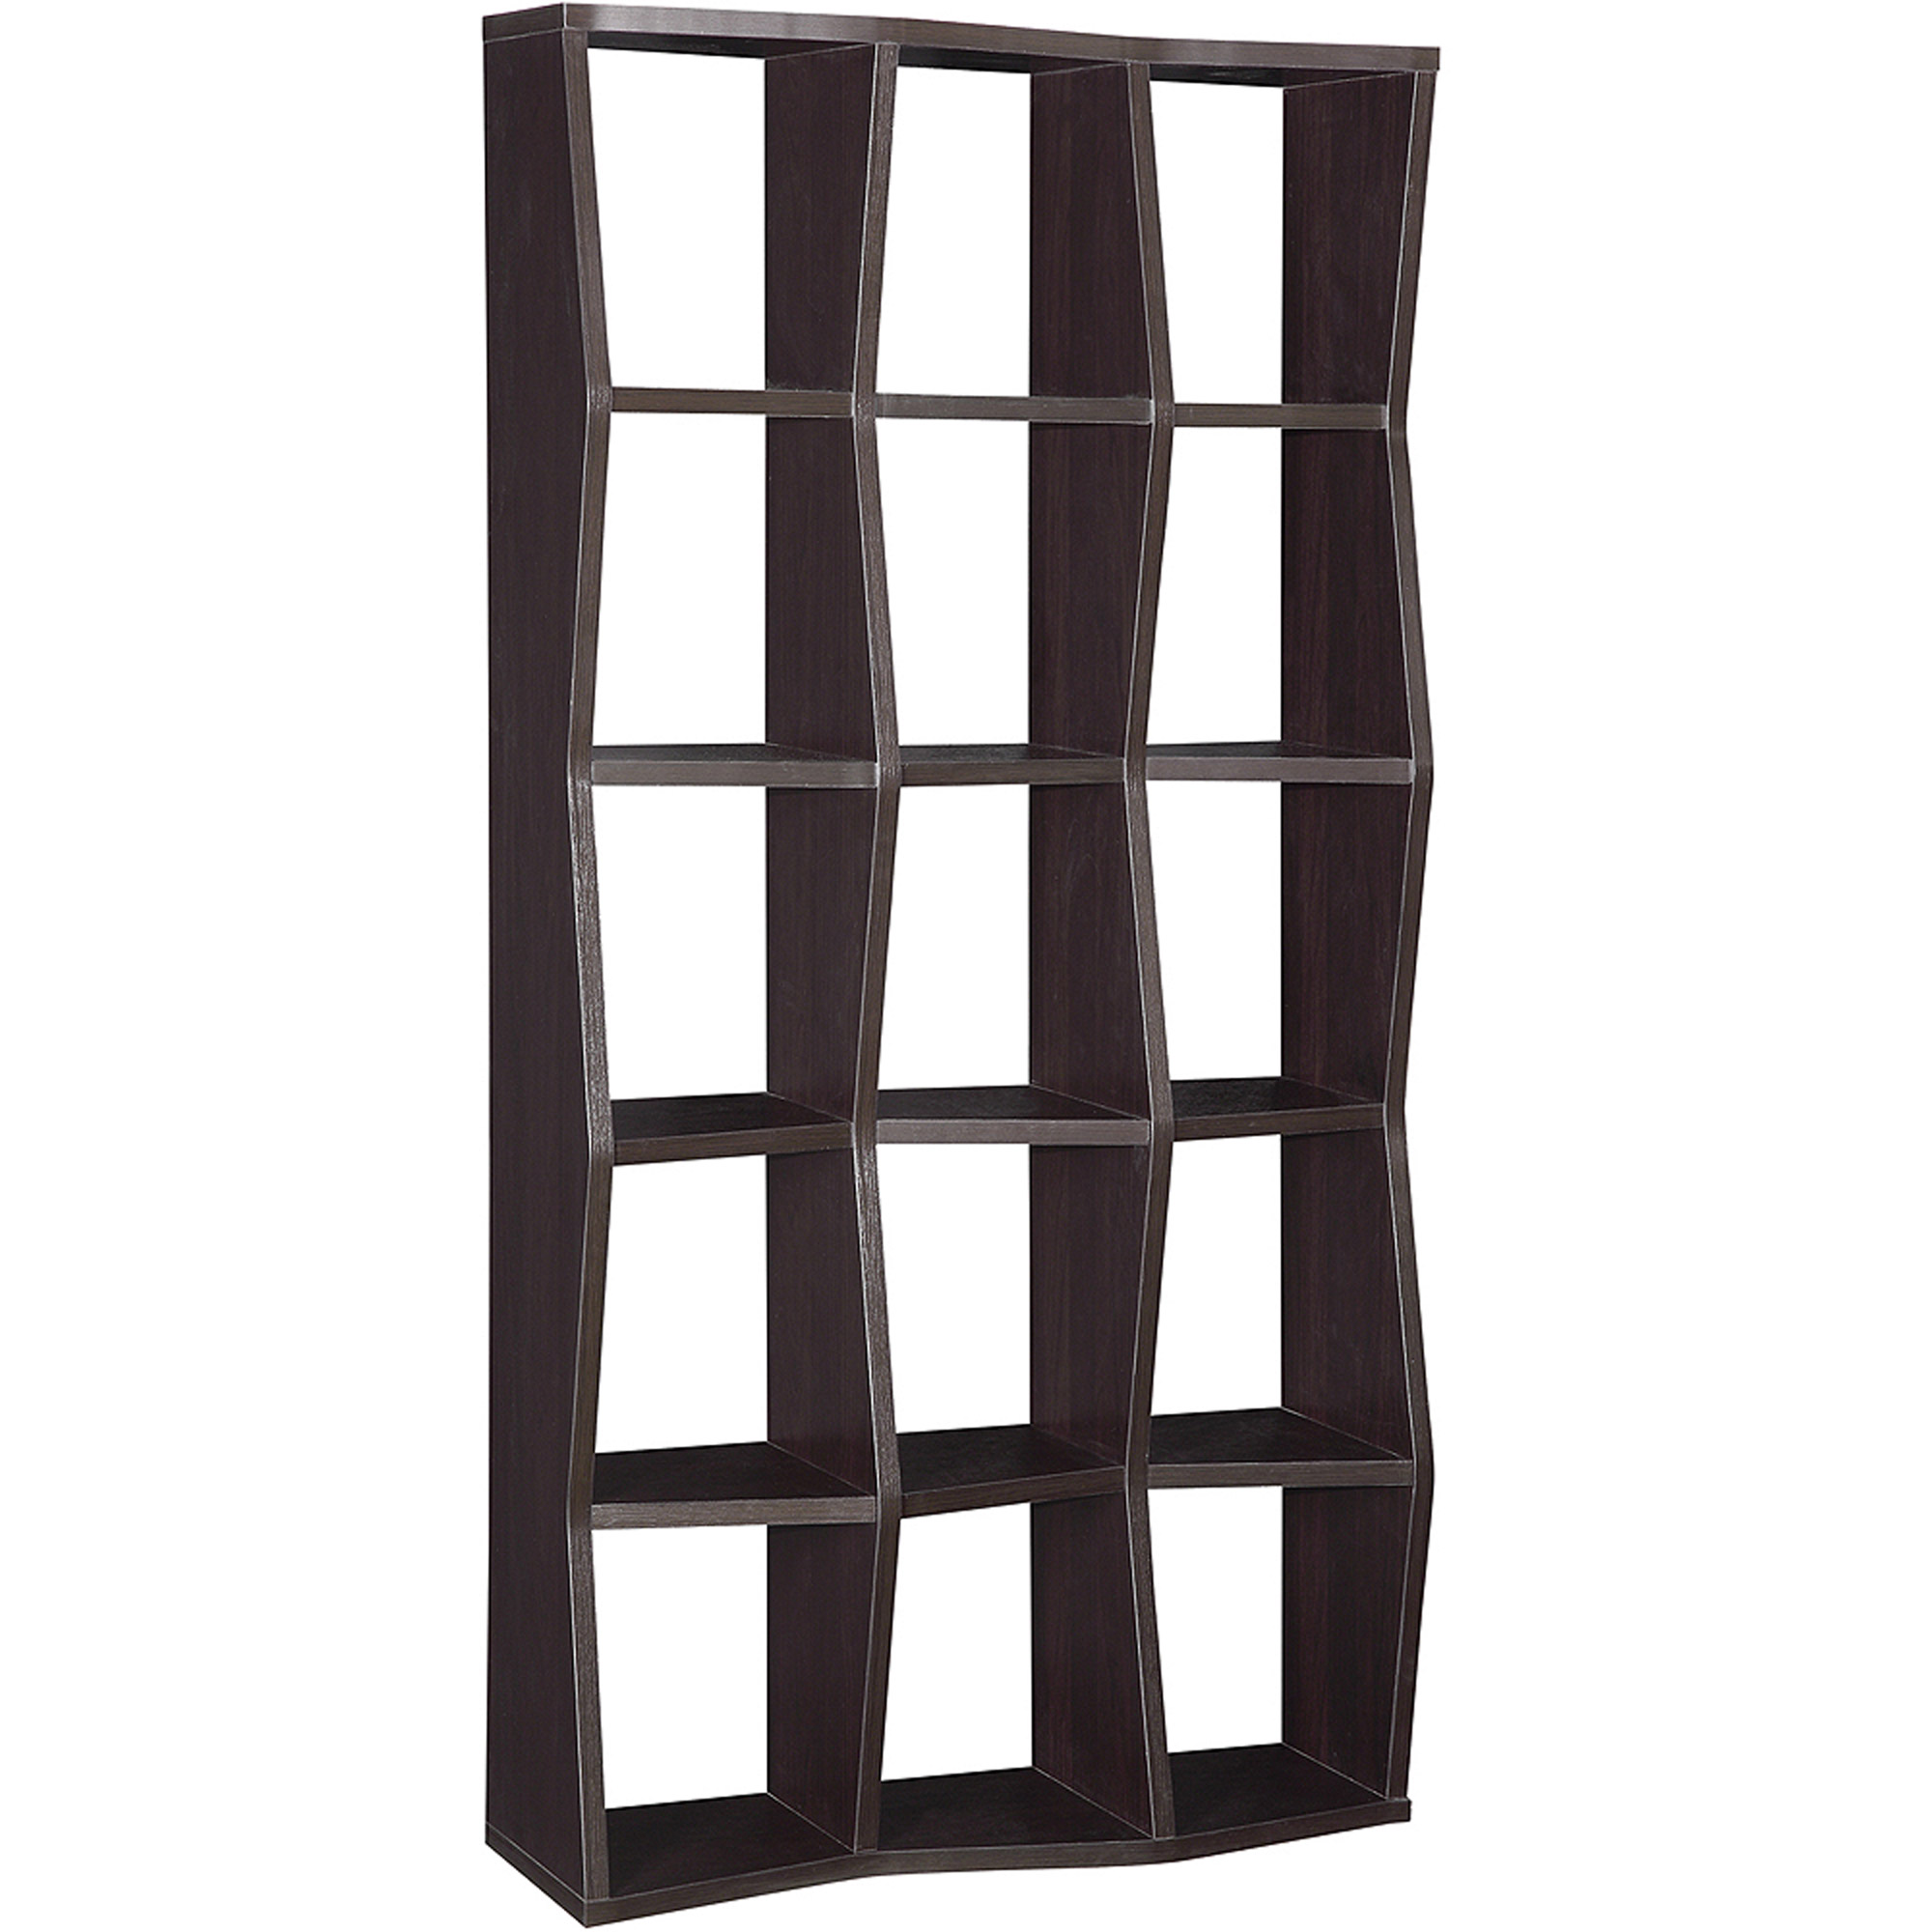 Coaster Backless Bookcase, Cappuccino by Coaster Company